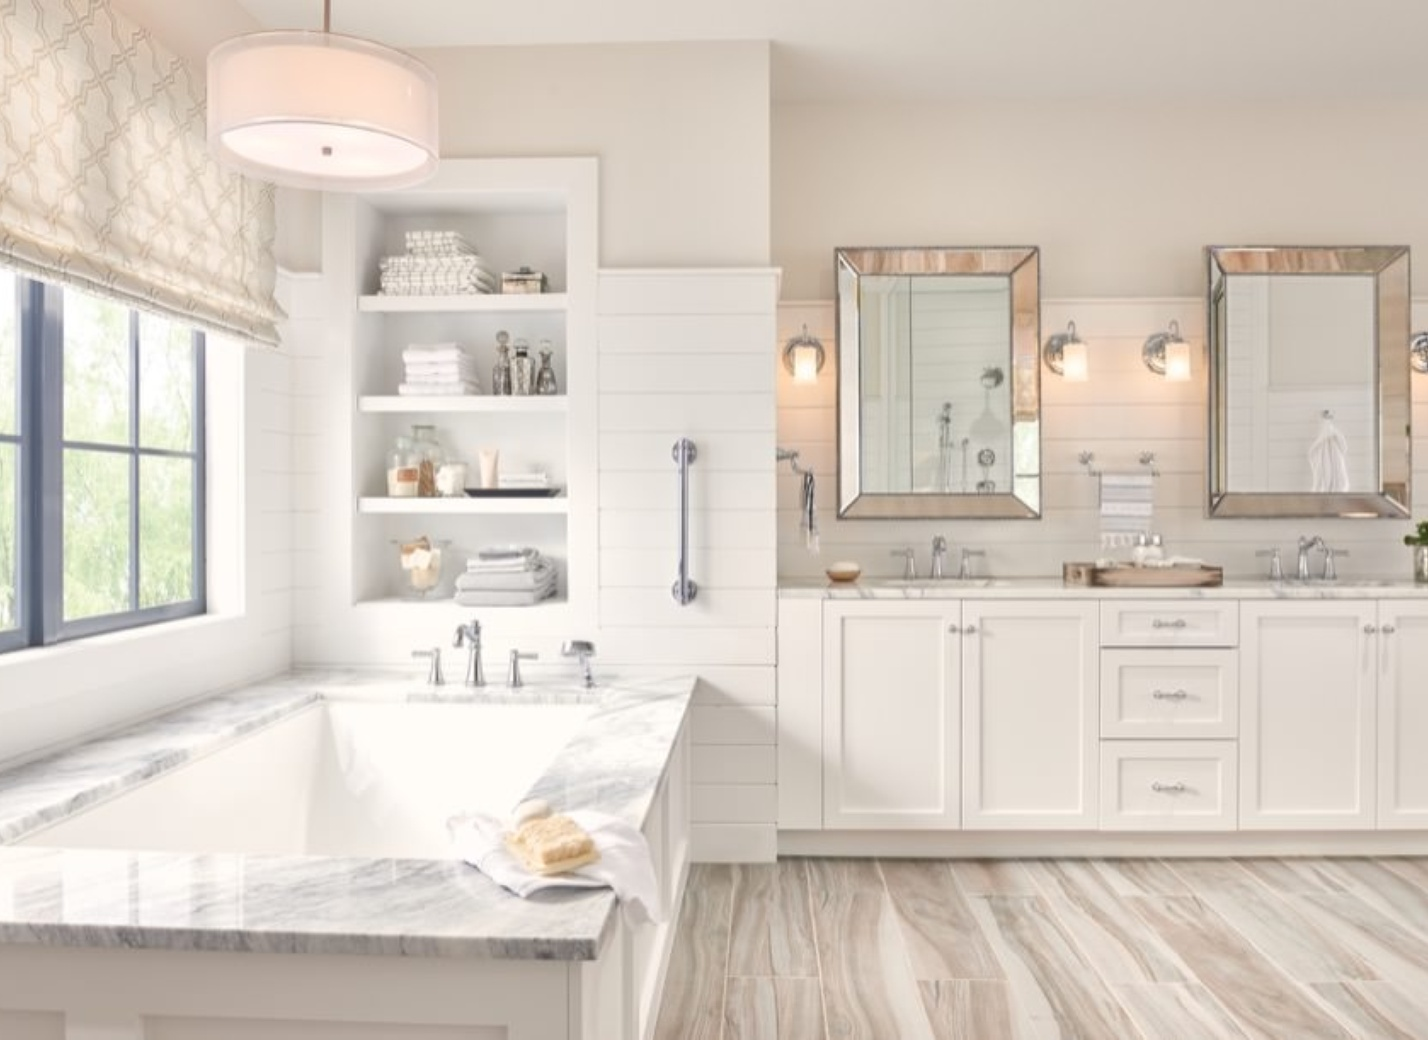 Alfano Kitchen & Bath Store - Plumbing Fixtures & Faucets ...